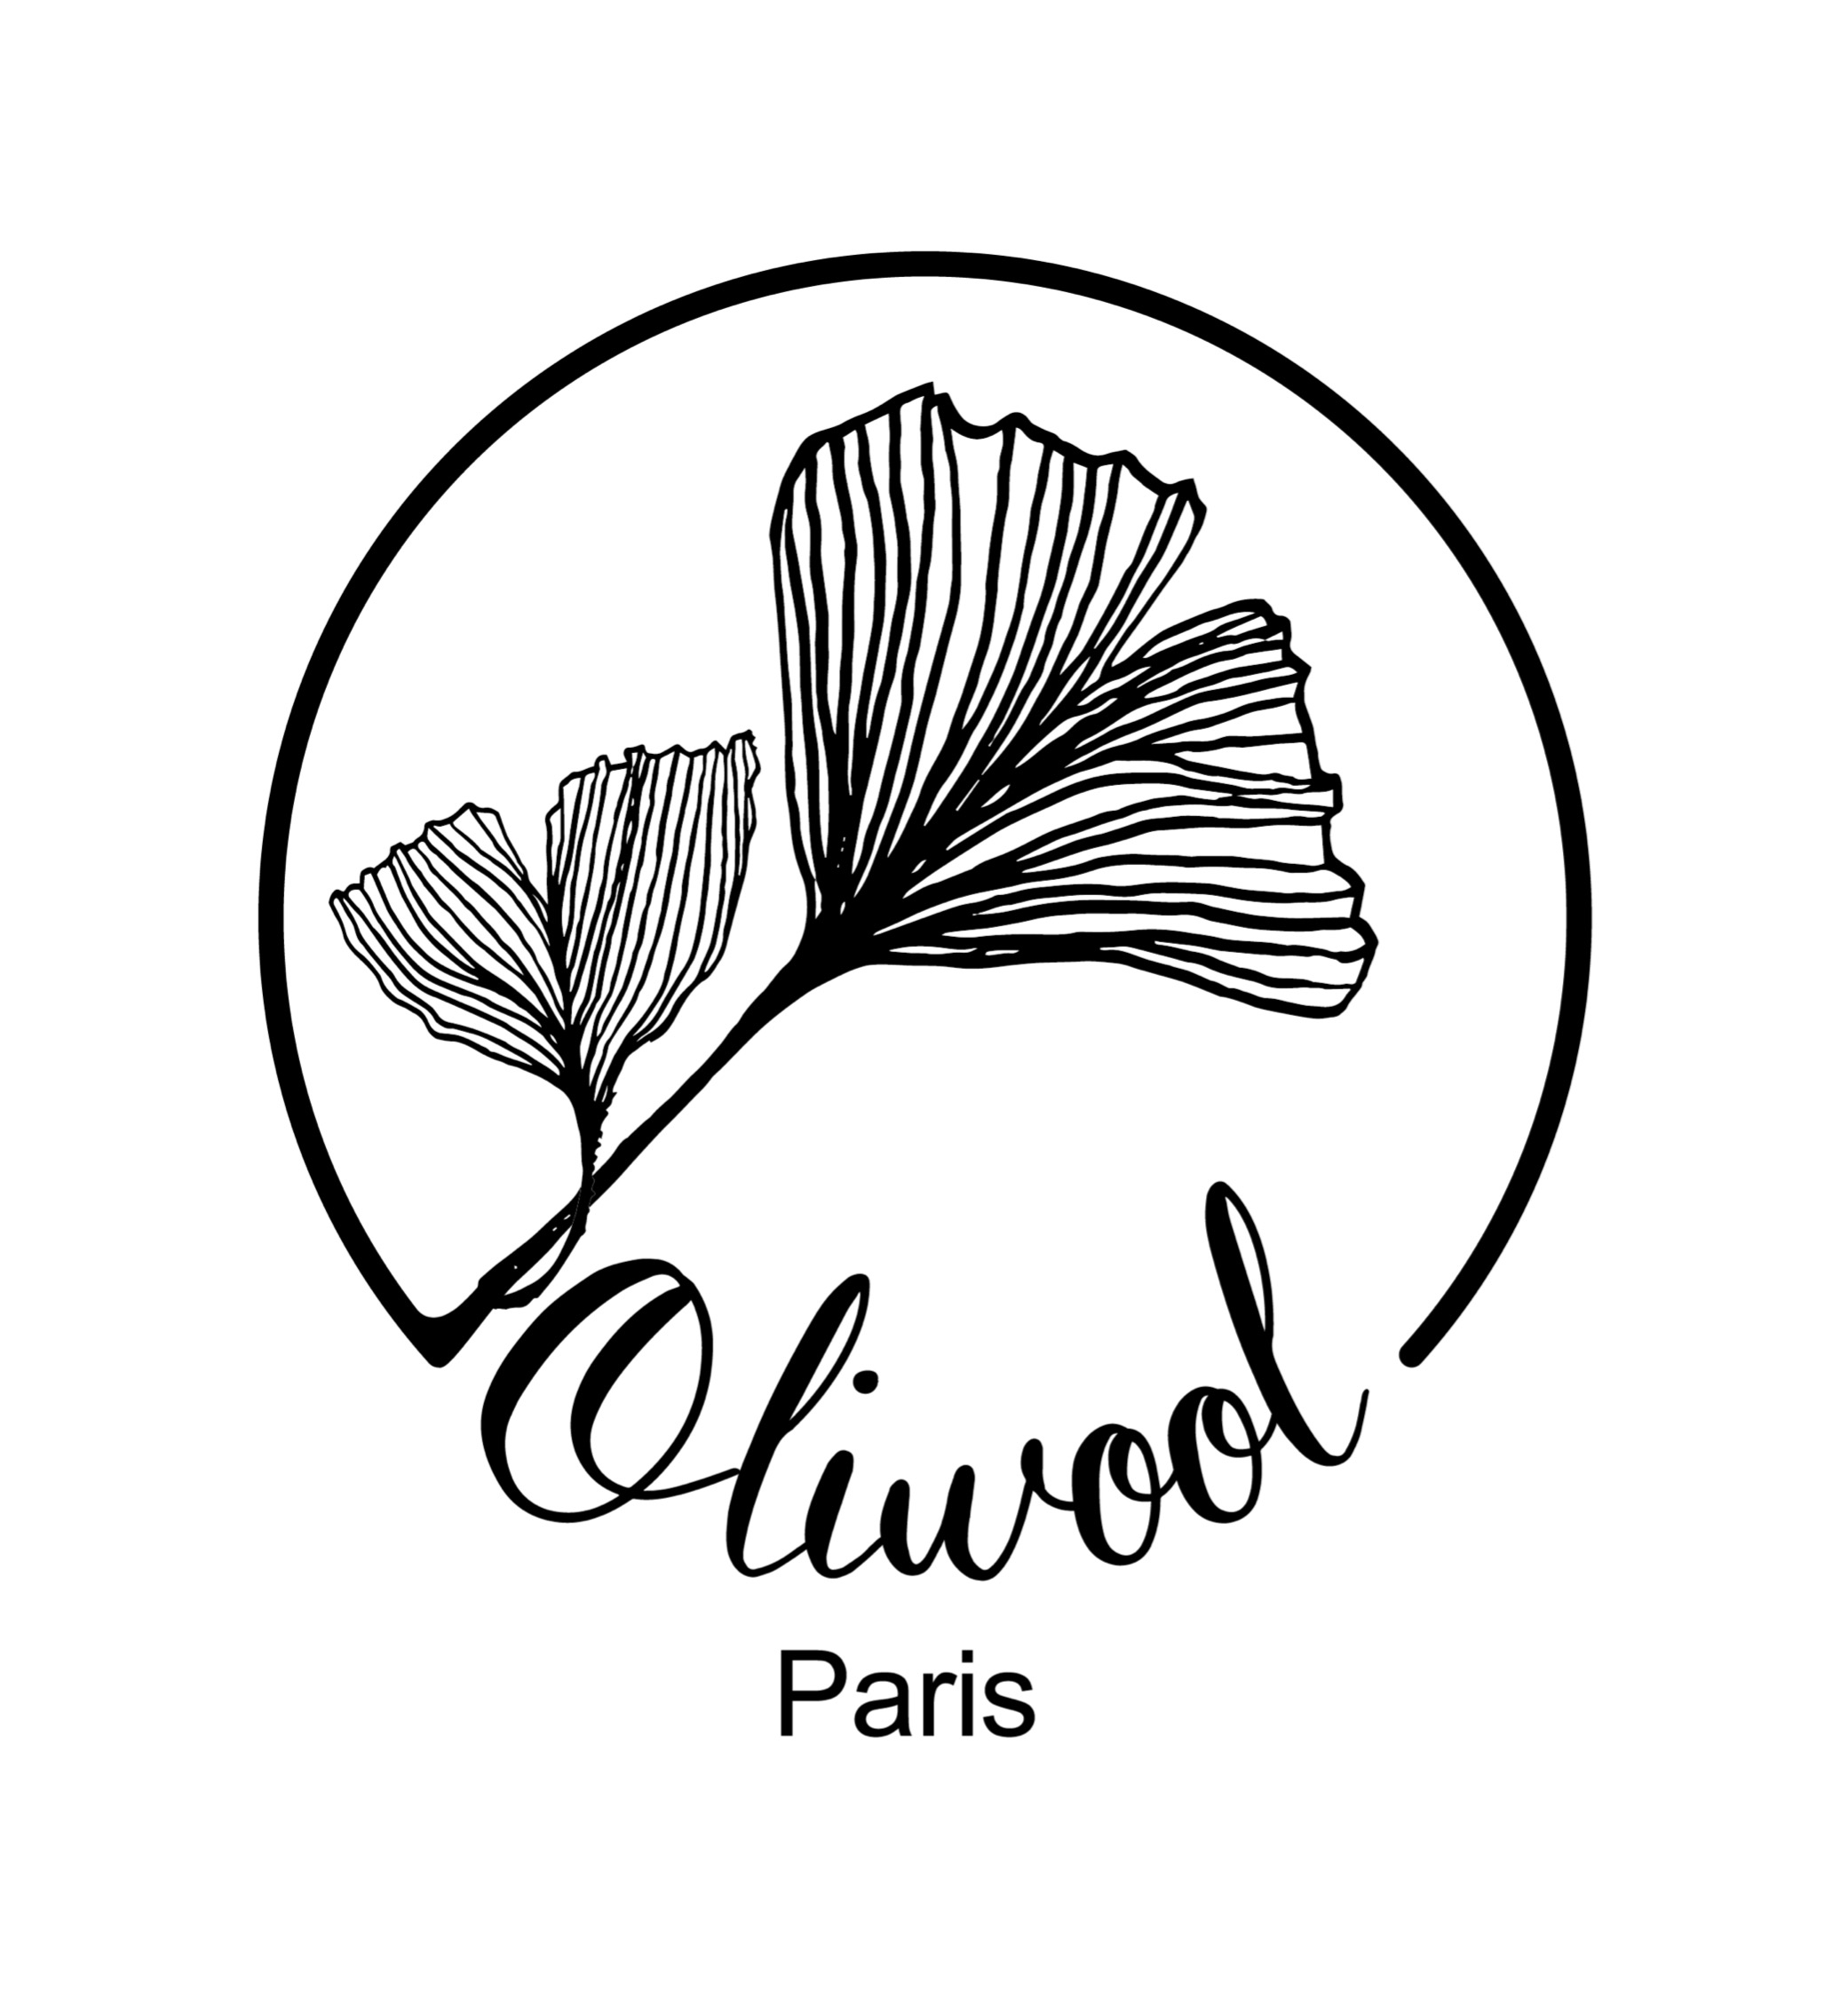 LOGO OLIWOOL project